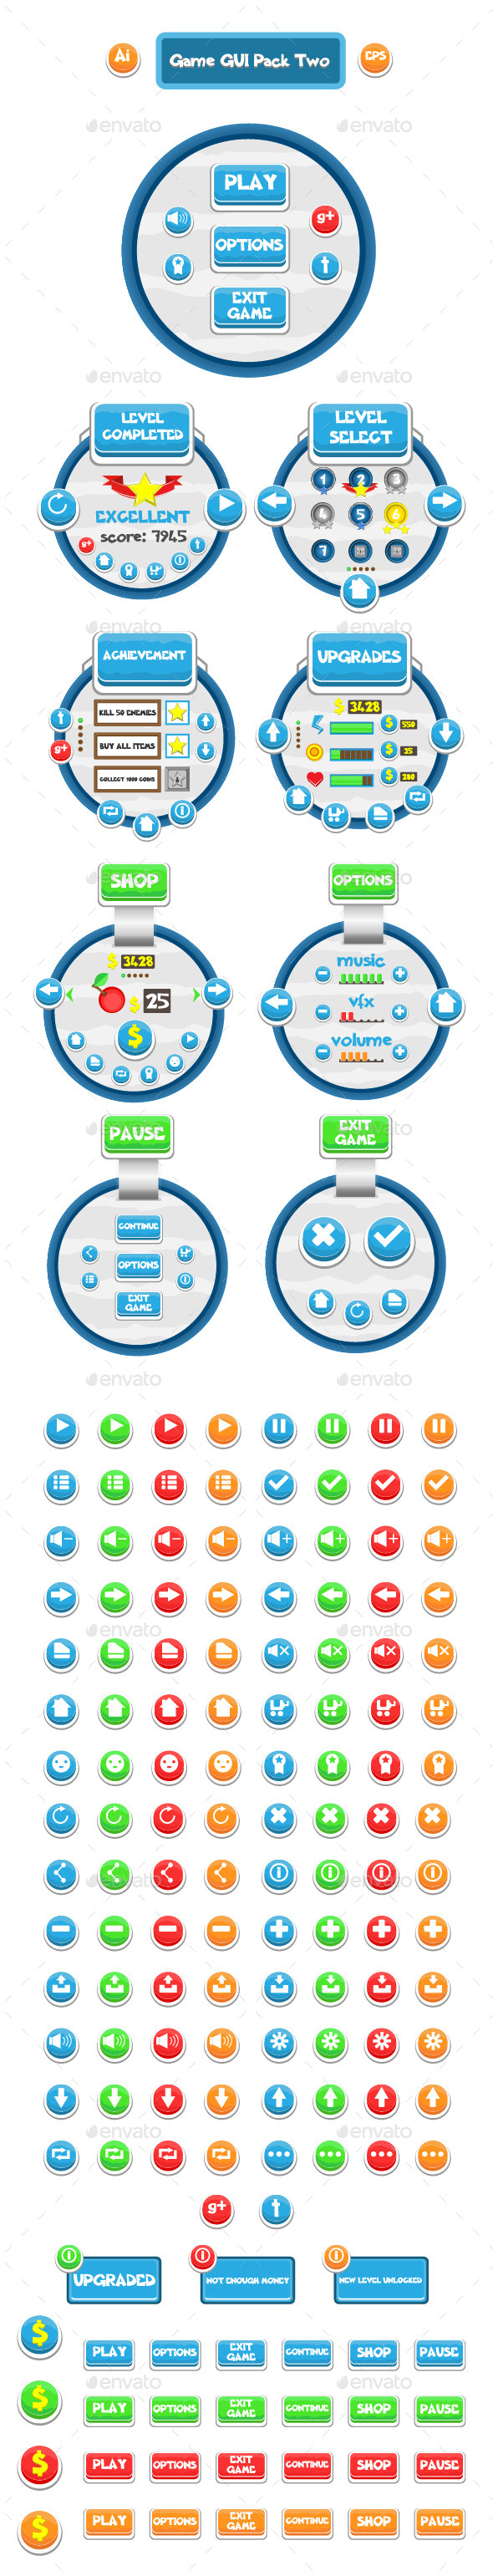 GraphicRiver Game GUI Pack Two 10809269